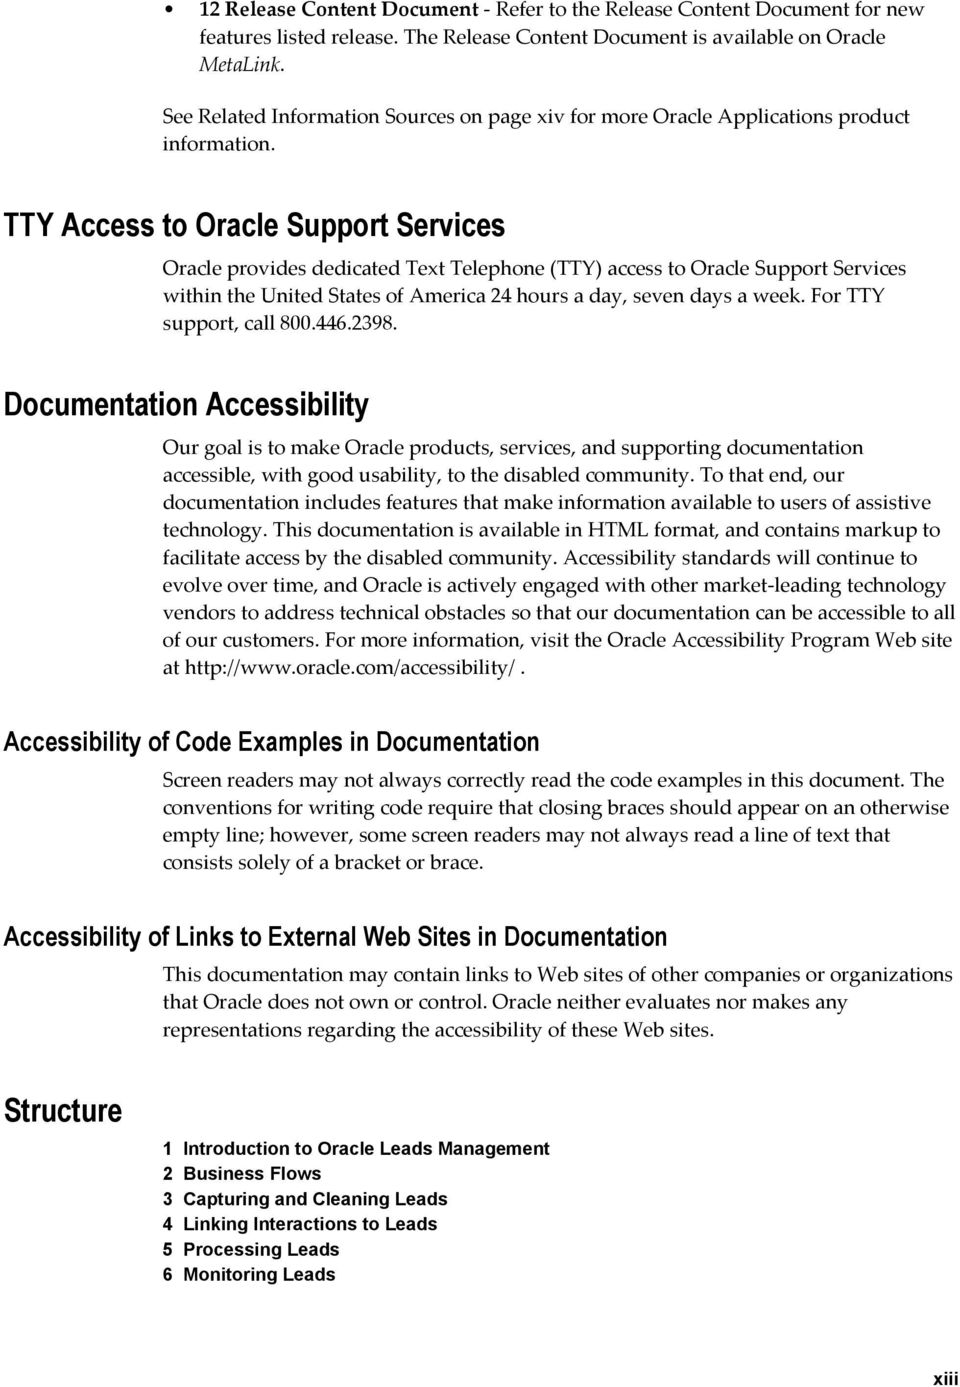 TTY Access to Oracle Support Services Oracle provides dedicated Text Telephone (TTY) access to Oracle Support Services within the United States of America 24 hours a day, seven days a week.